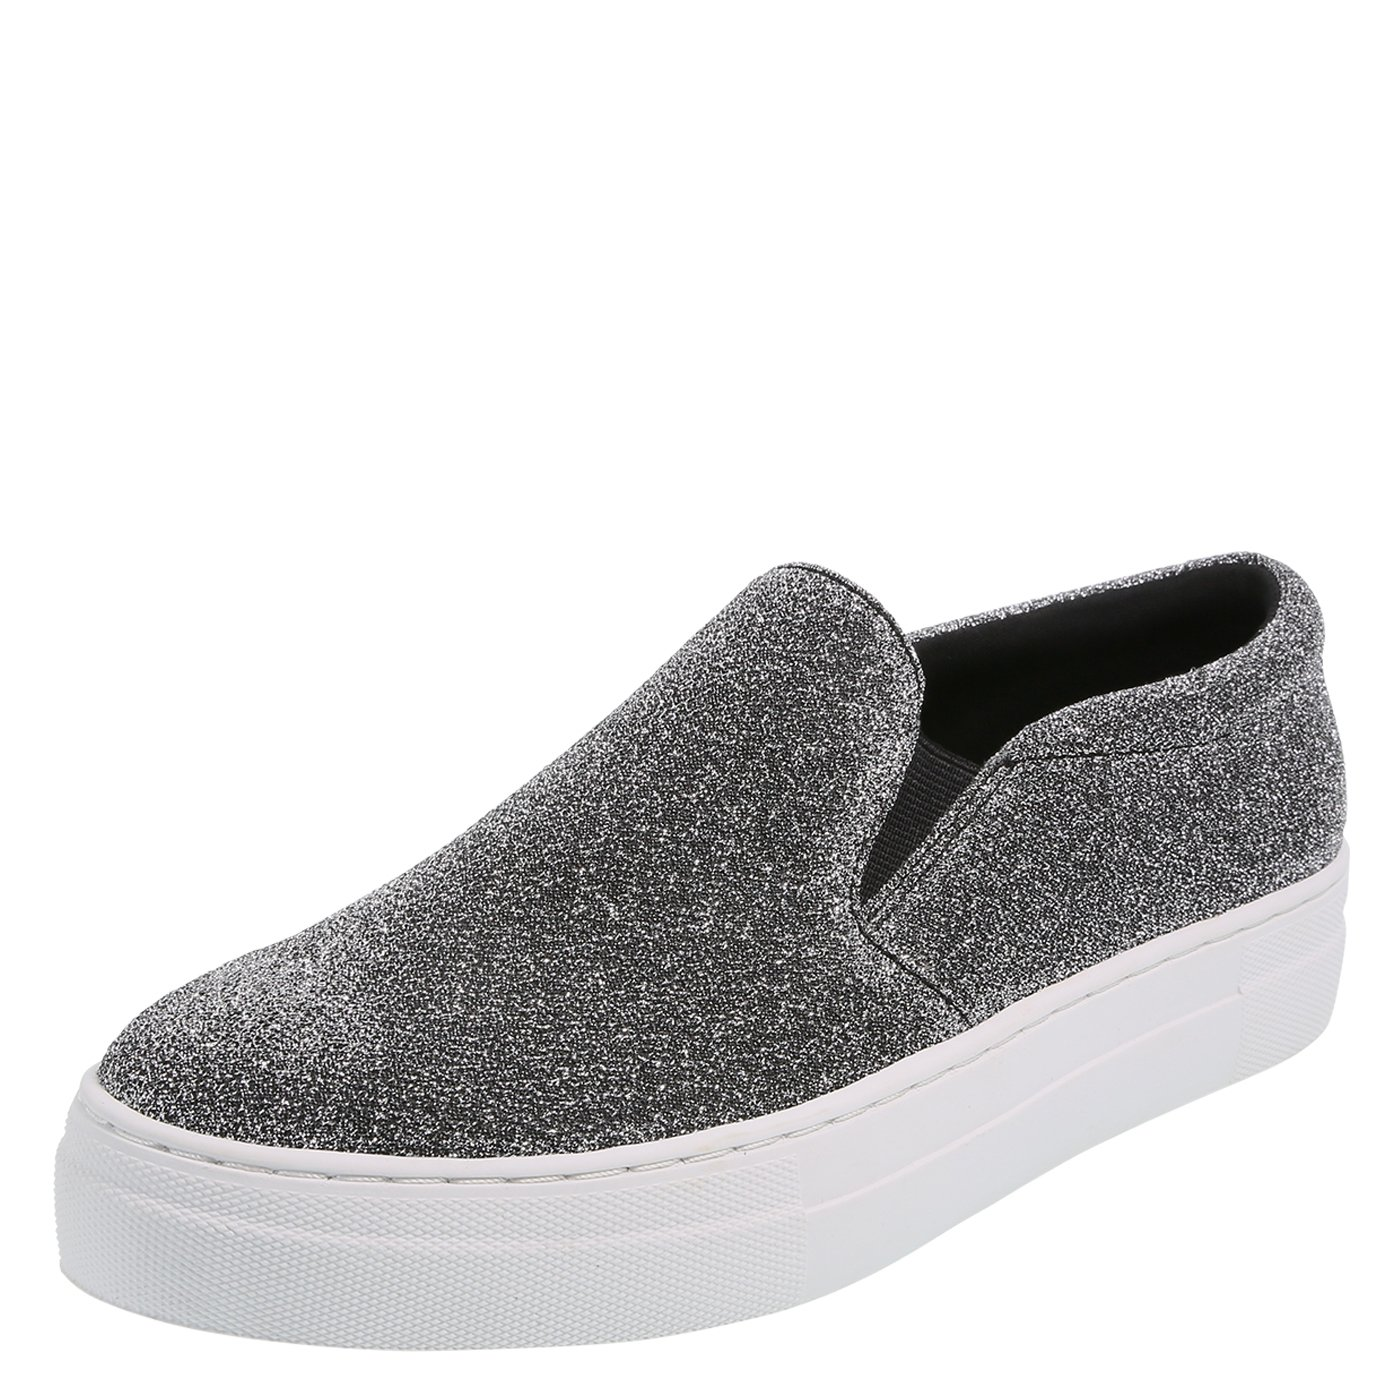 Brash Women's Evonne Slip-On Sneaker B07CHV1Q2P 12 B(M) US|Silver Lurex